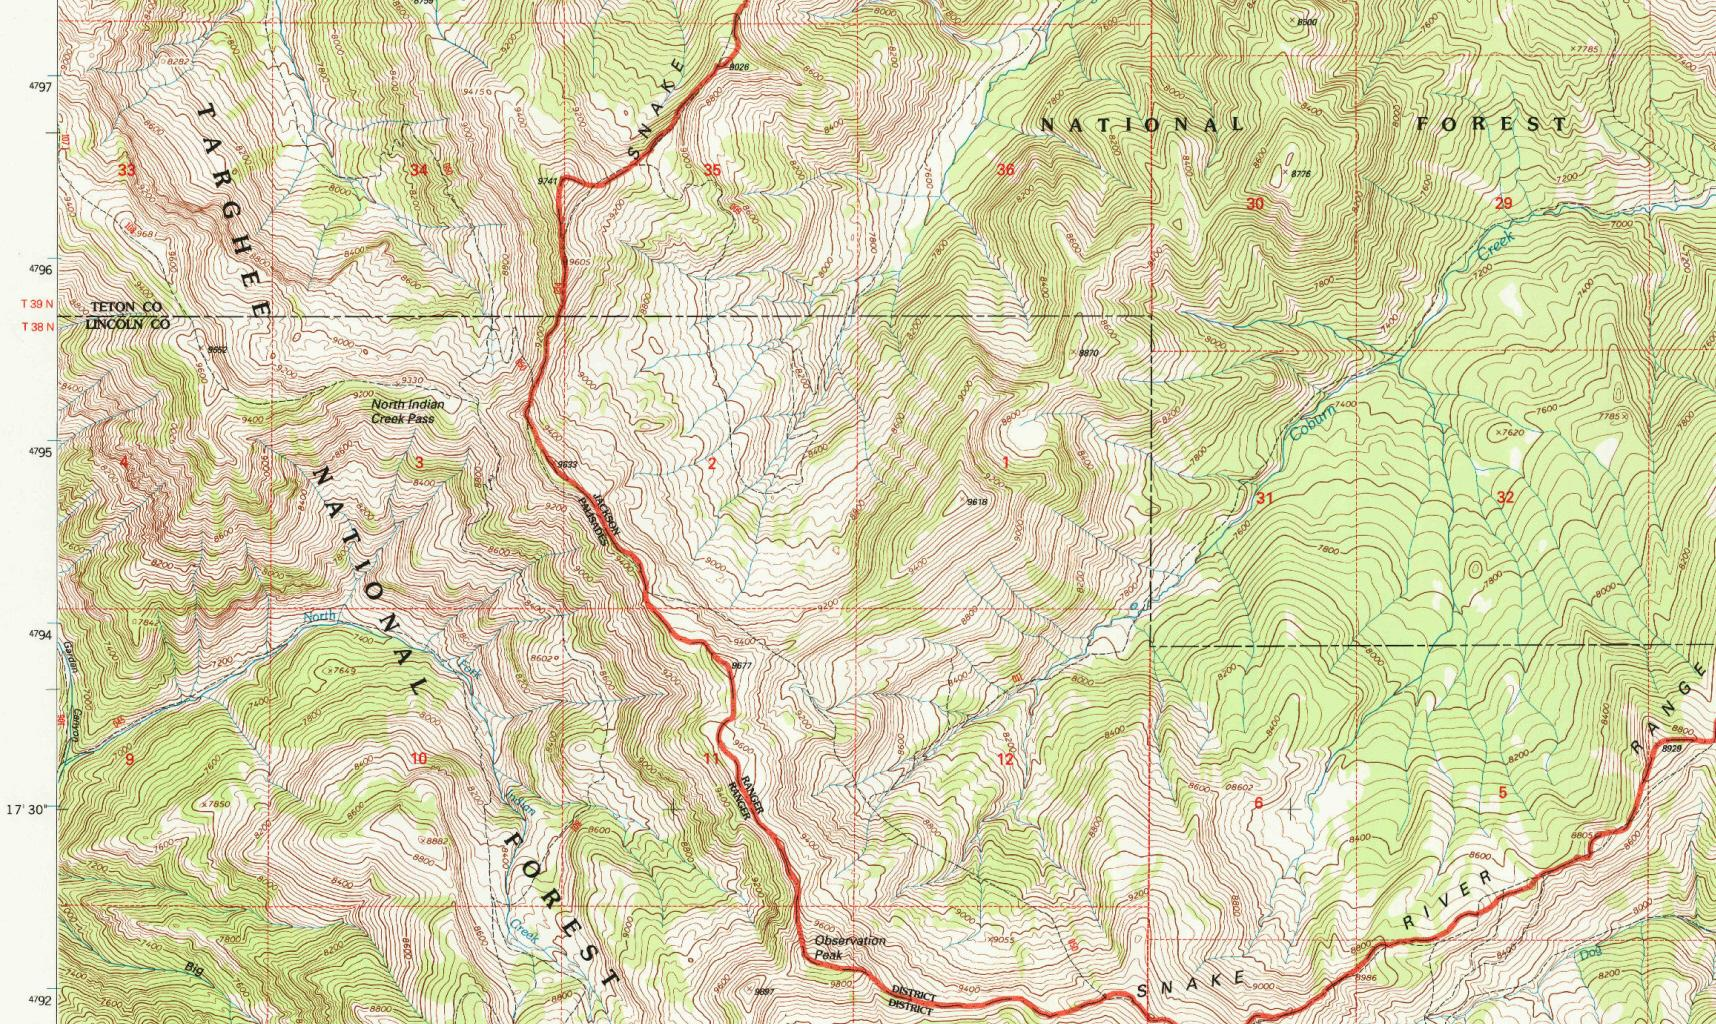 Grand Teton National Park (WY), Observation Peak sheet in the USA 1:24,000 map series, Reston 1996